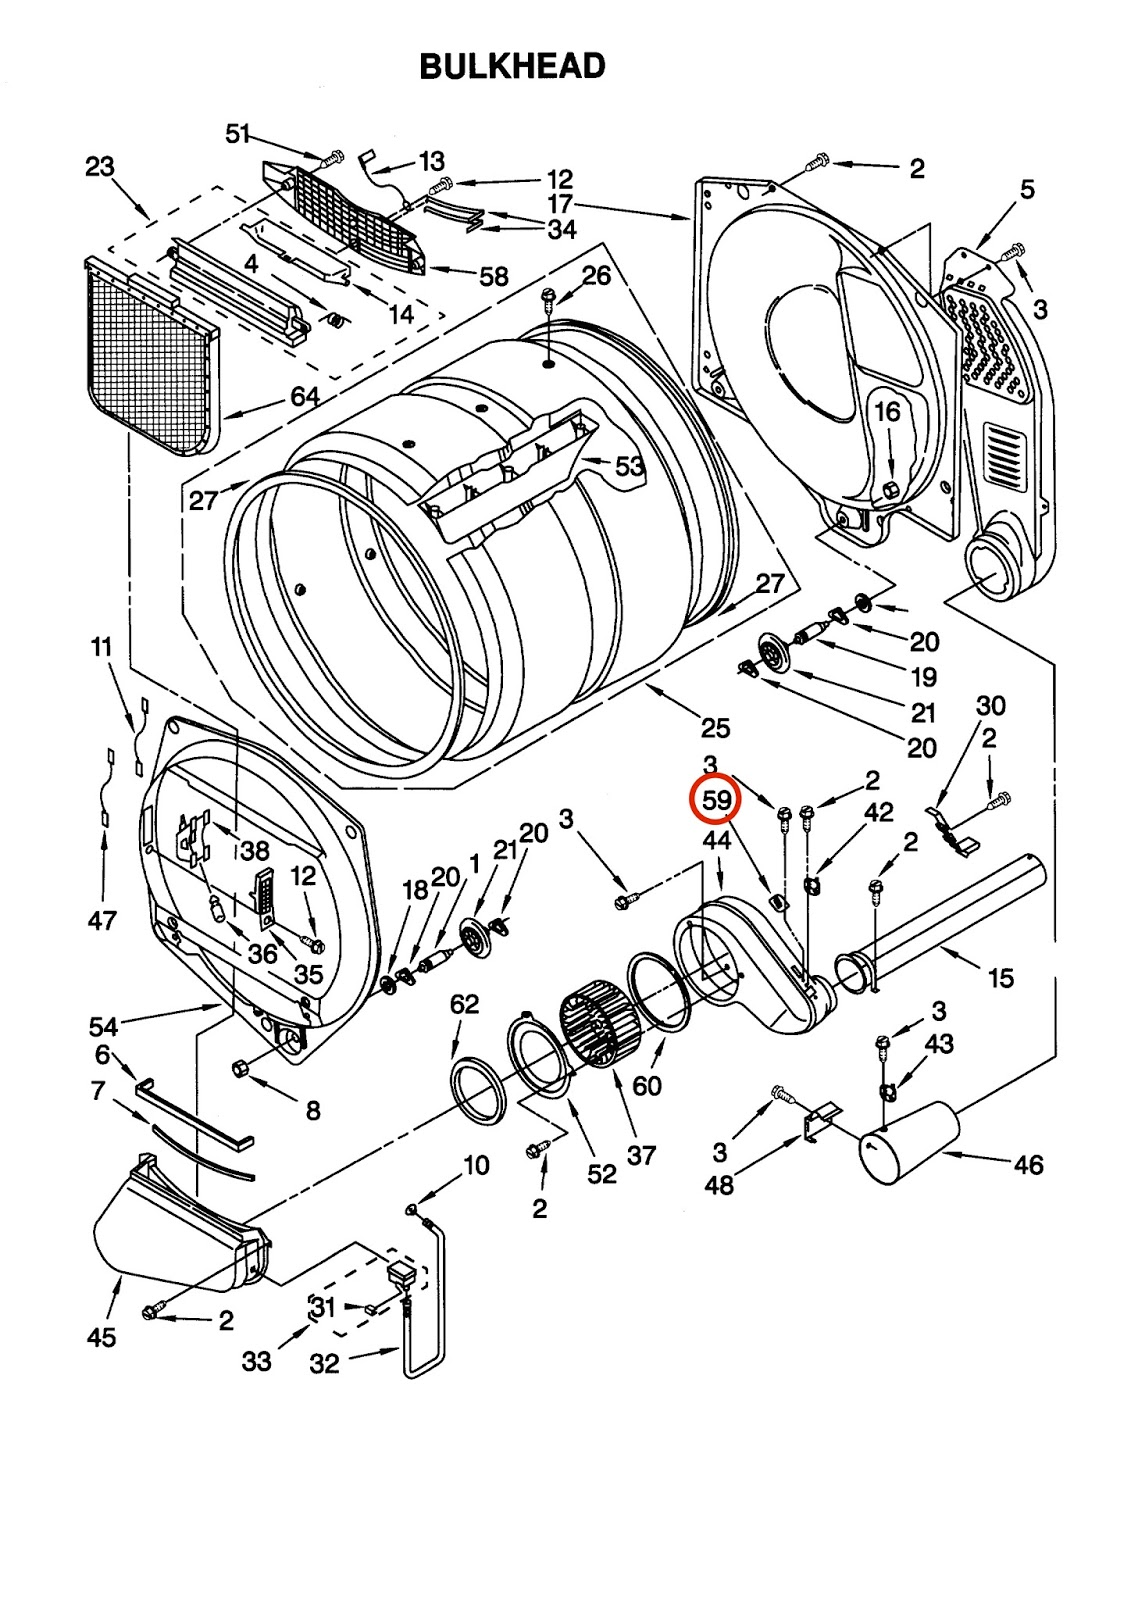 hight resolution of part 59 is the thermal fuse click for a larger version